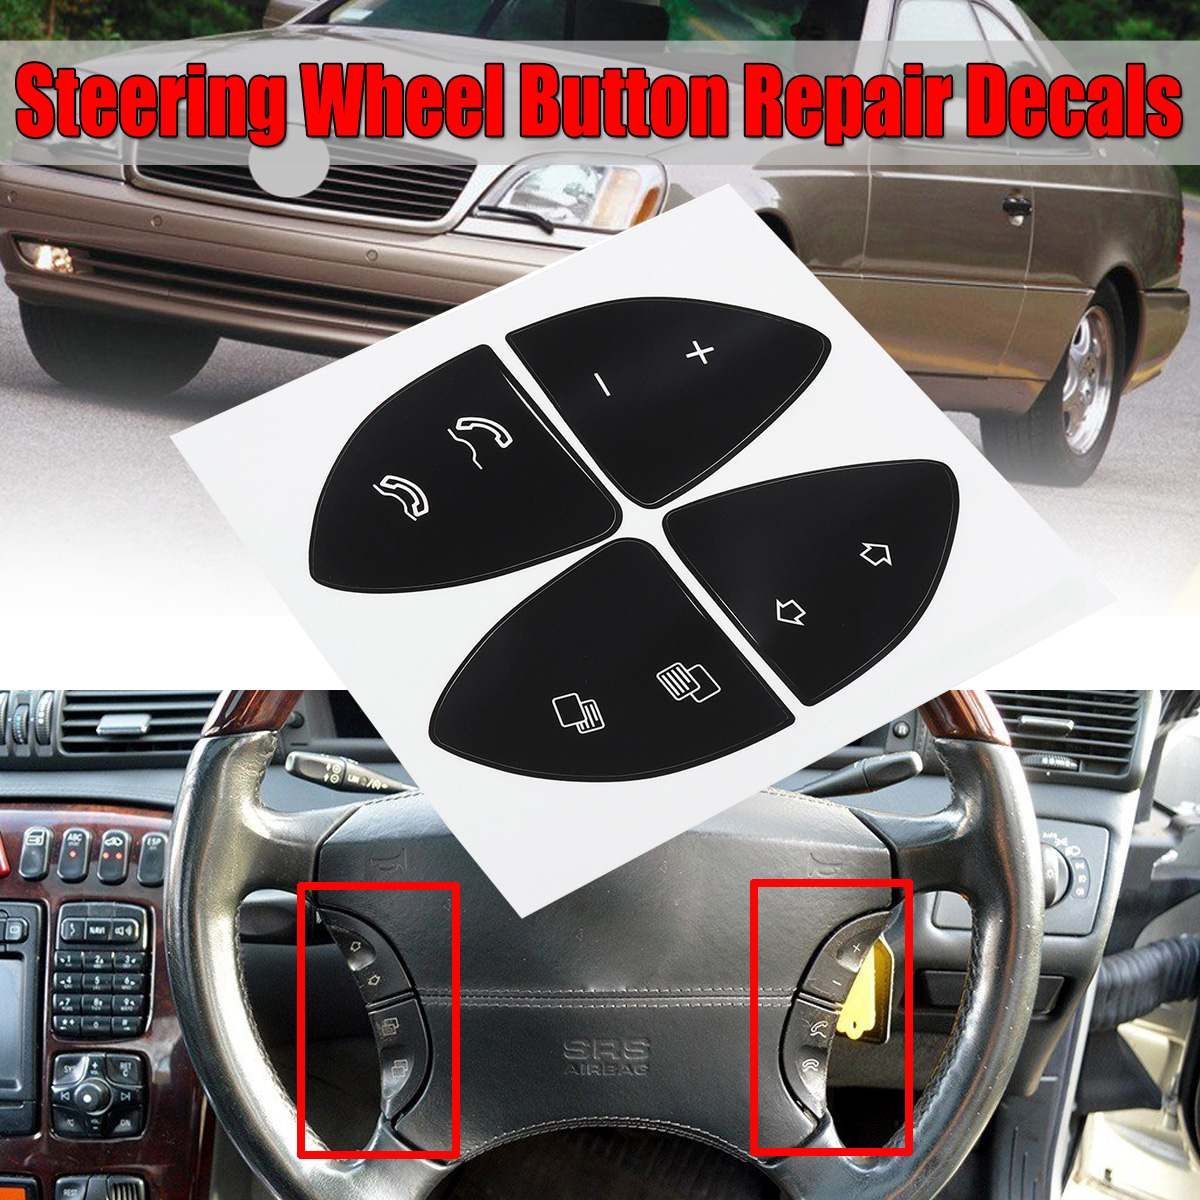 Car Button Repair Sticker Steering Wheel Button Repair Decals Stickers Kit For <font><b>MERCEDES</b></font> For BENZ W220 S430 <font><b>S500</b></font> S600 CL500 CL600 image